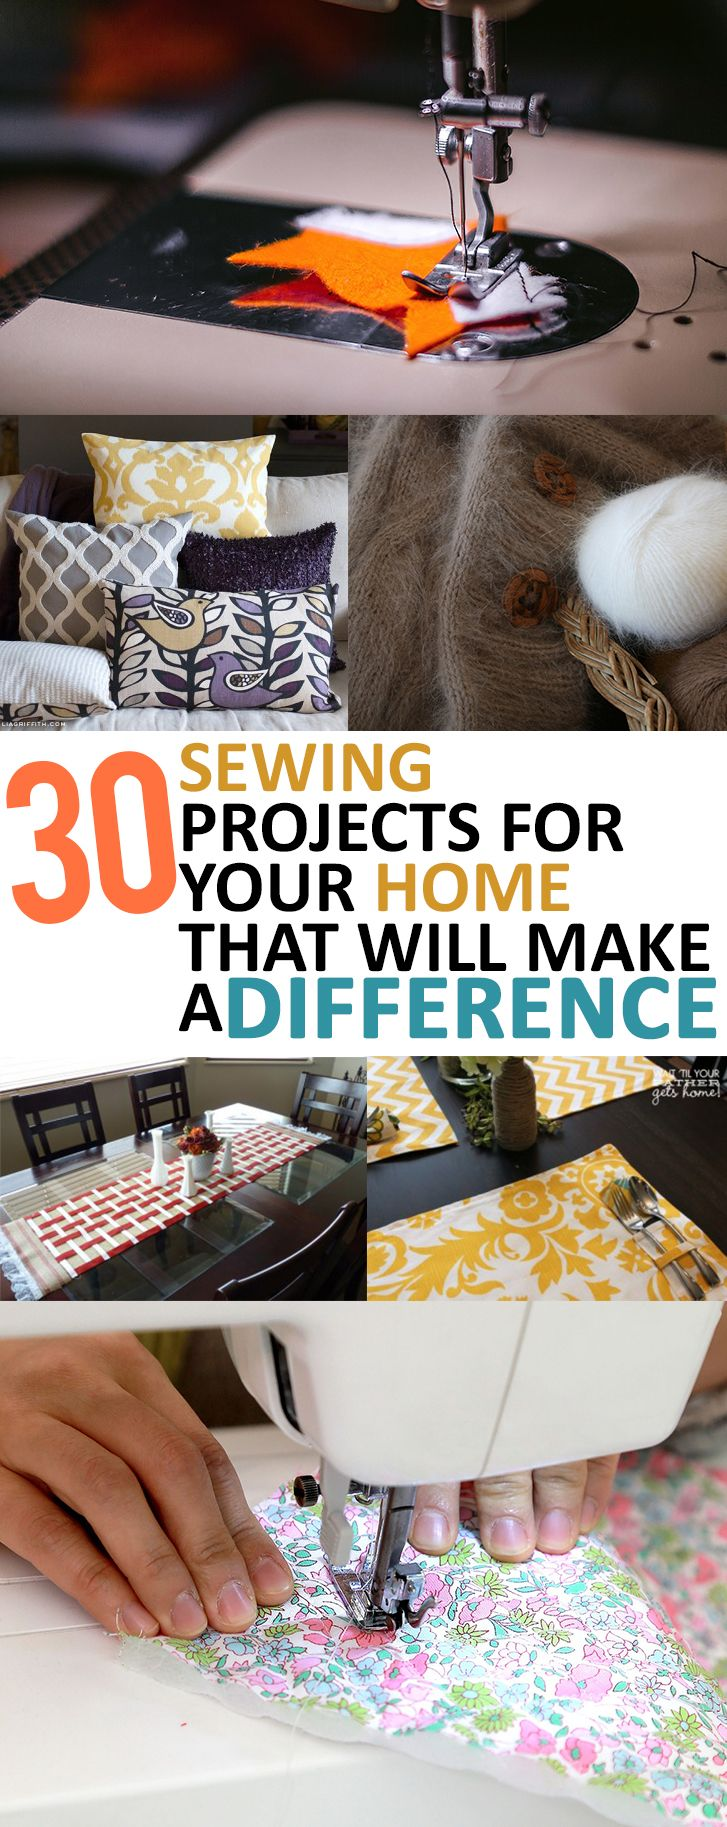 30 Sewing Projects for Your Home That Will Make a Difference